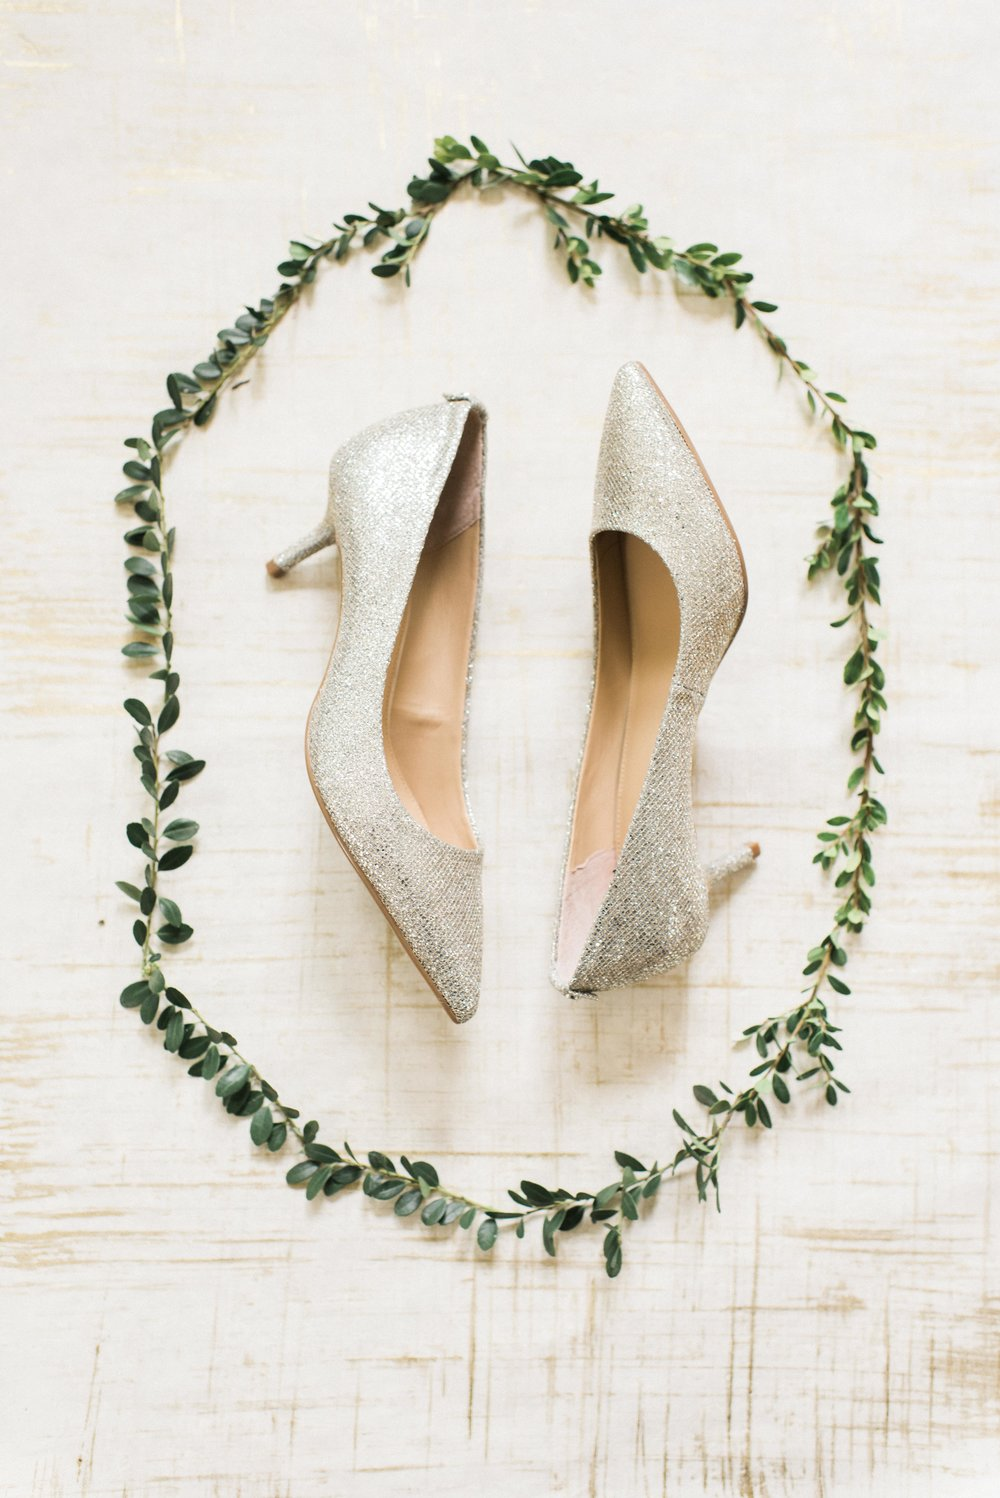 Michael Kors, Michael hors wedding shoes, wedding shoes, bride wedding shoes, sparkle, shiny shoes for weddings, wedding details, details shot, shoe photography, shoe shot, wedding day getting ready, wedding day styling